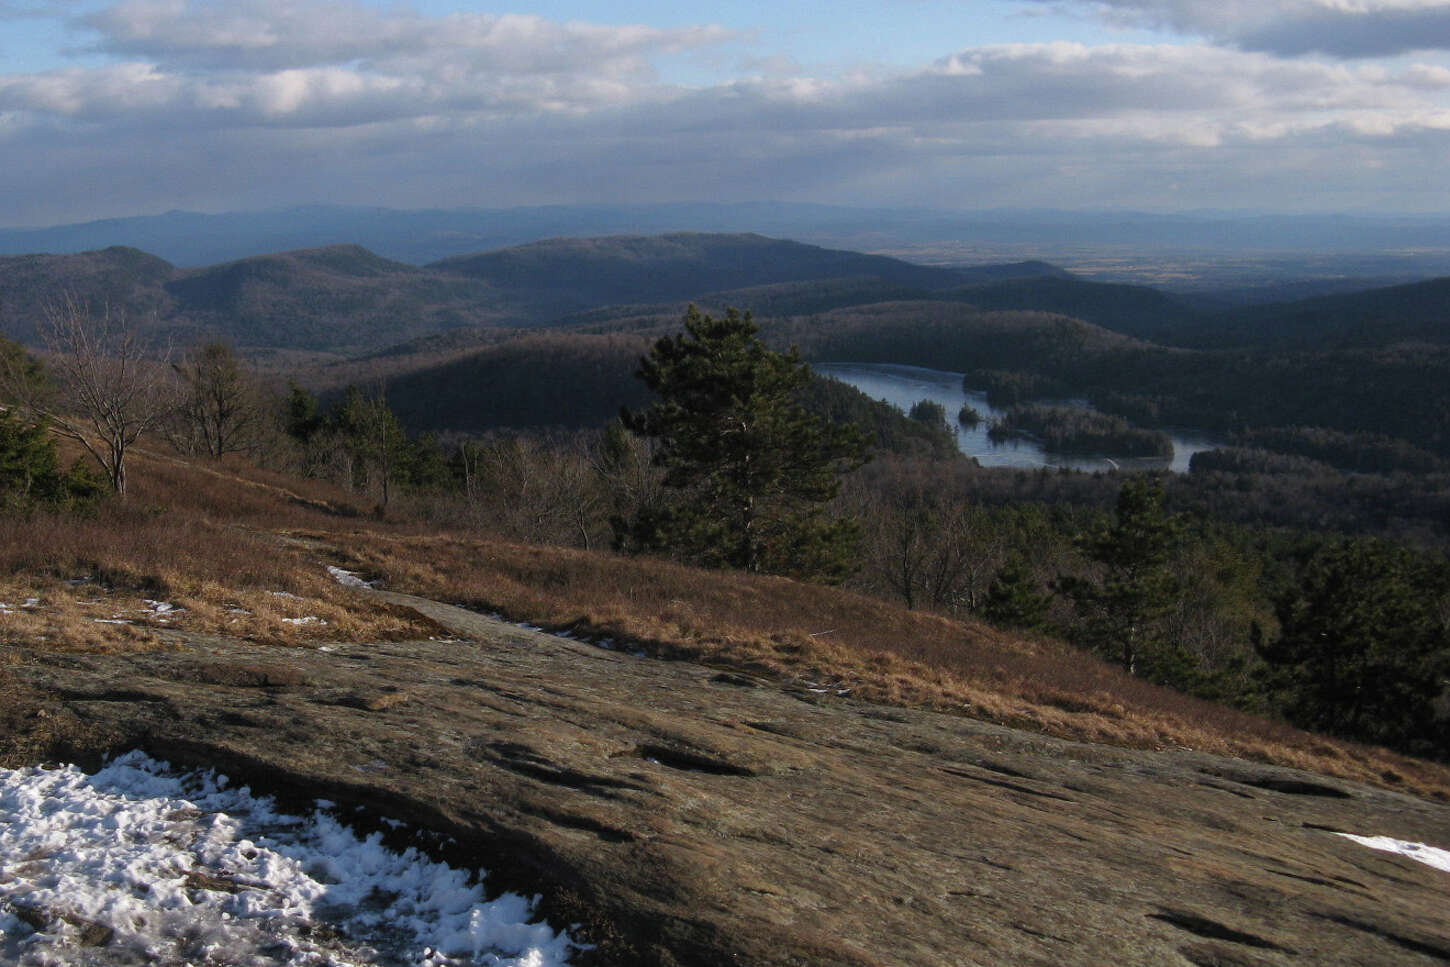 The 10 best mountain hikes in the Capital Region area